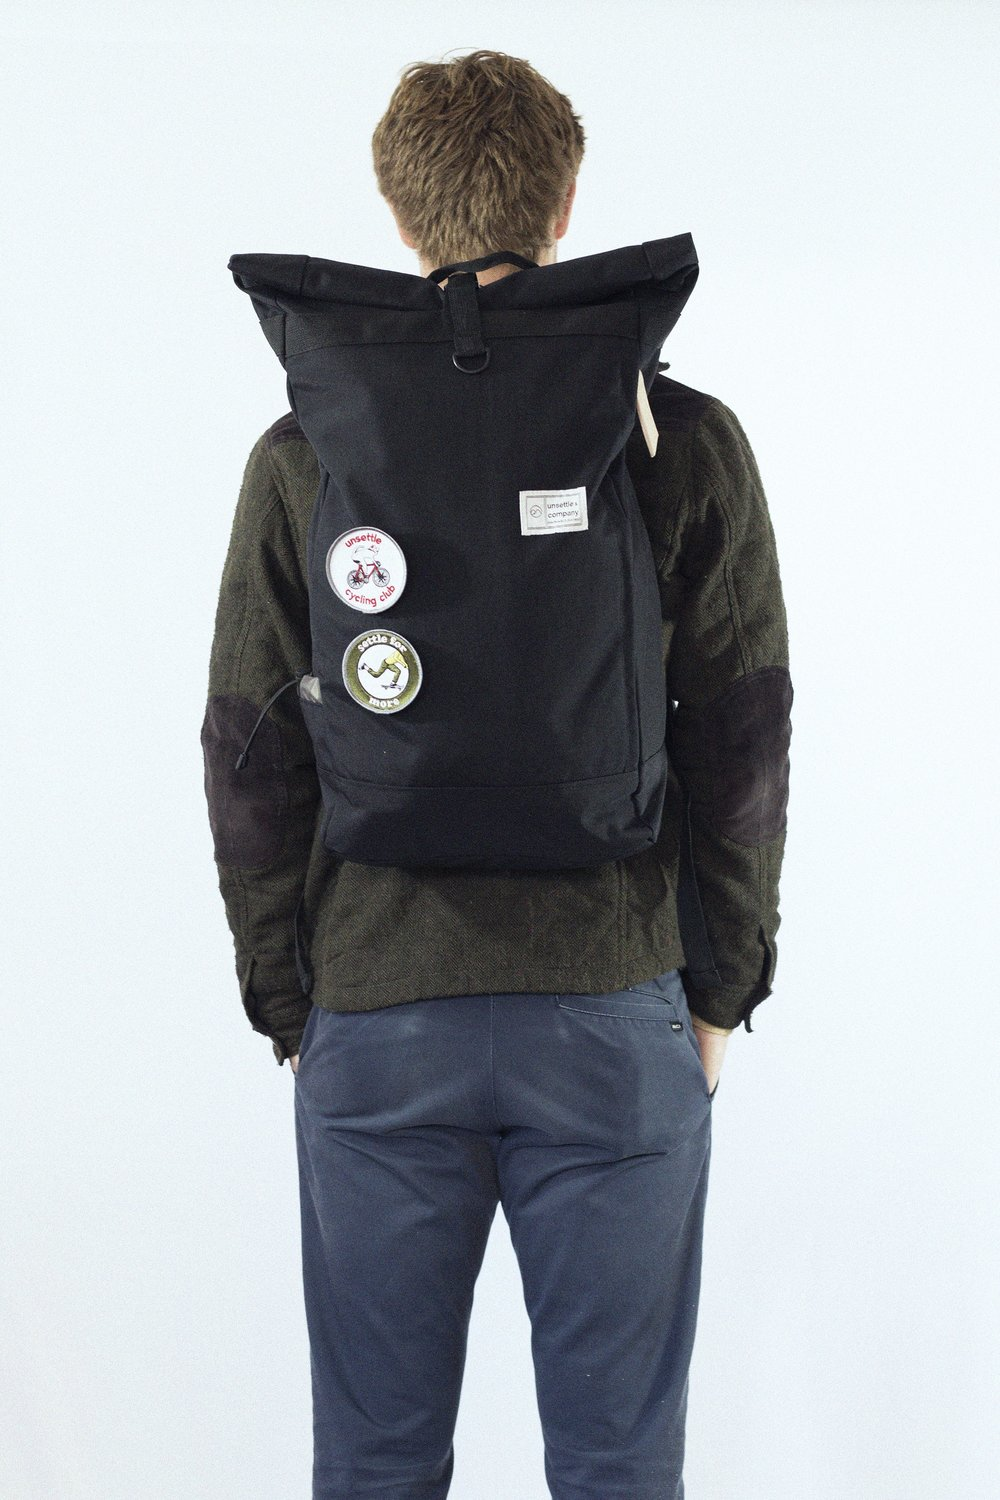 colespaceblackcommuterrolltopbackpacklookbook